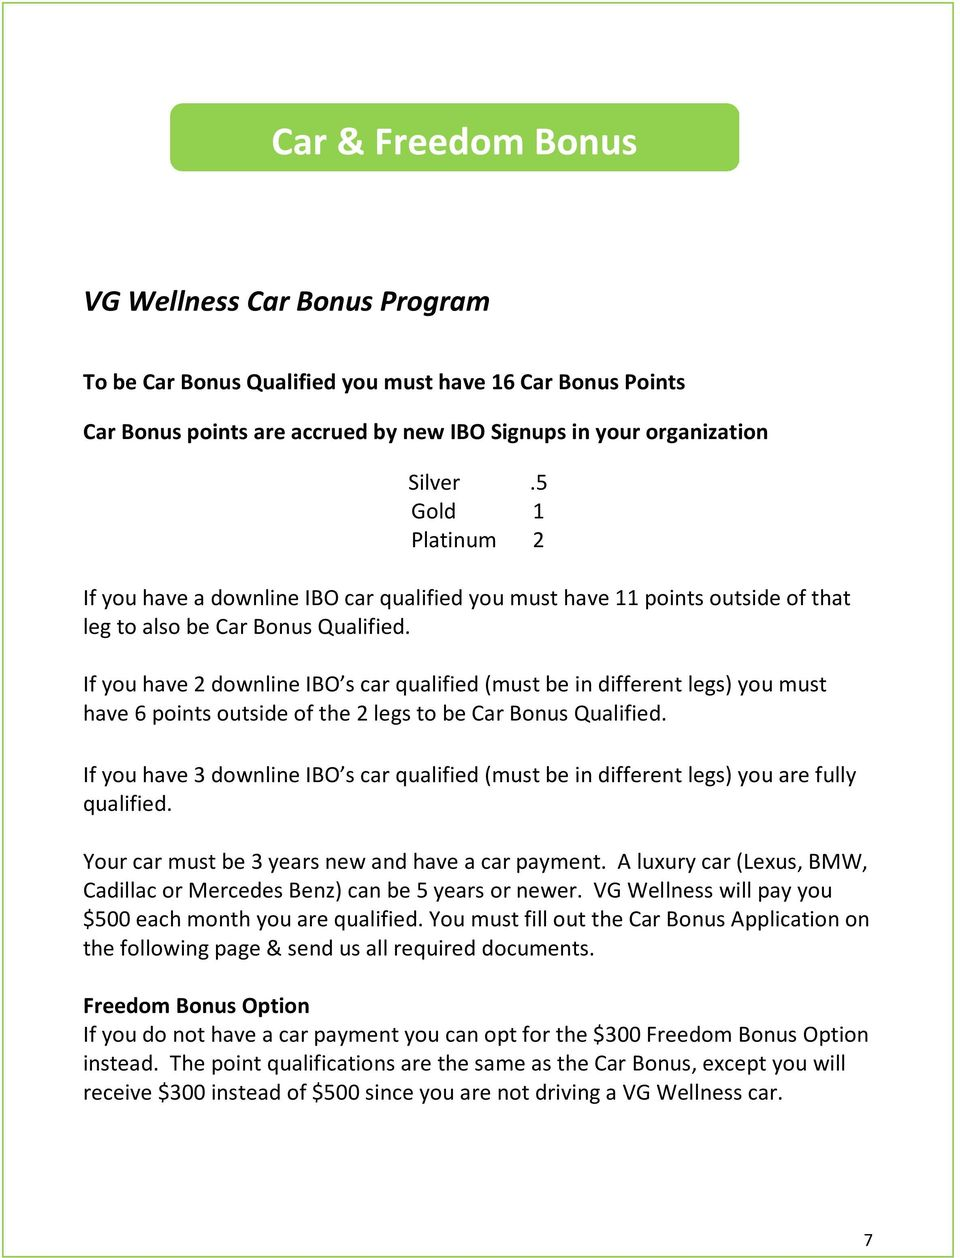 If you have 2 downline IBO s car qualified (must be in different legs) you must have 6 points outside of the 2 legs to be Car Bonus Qualified.